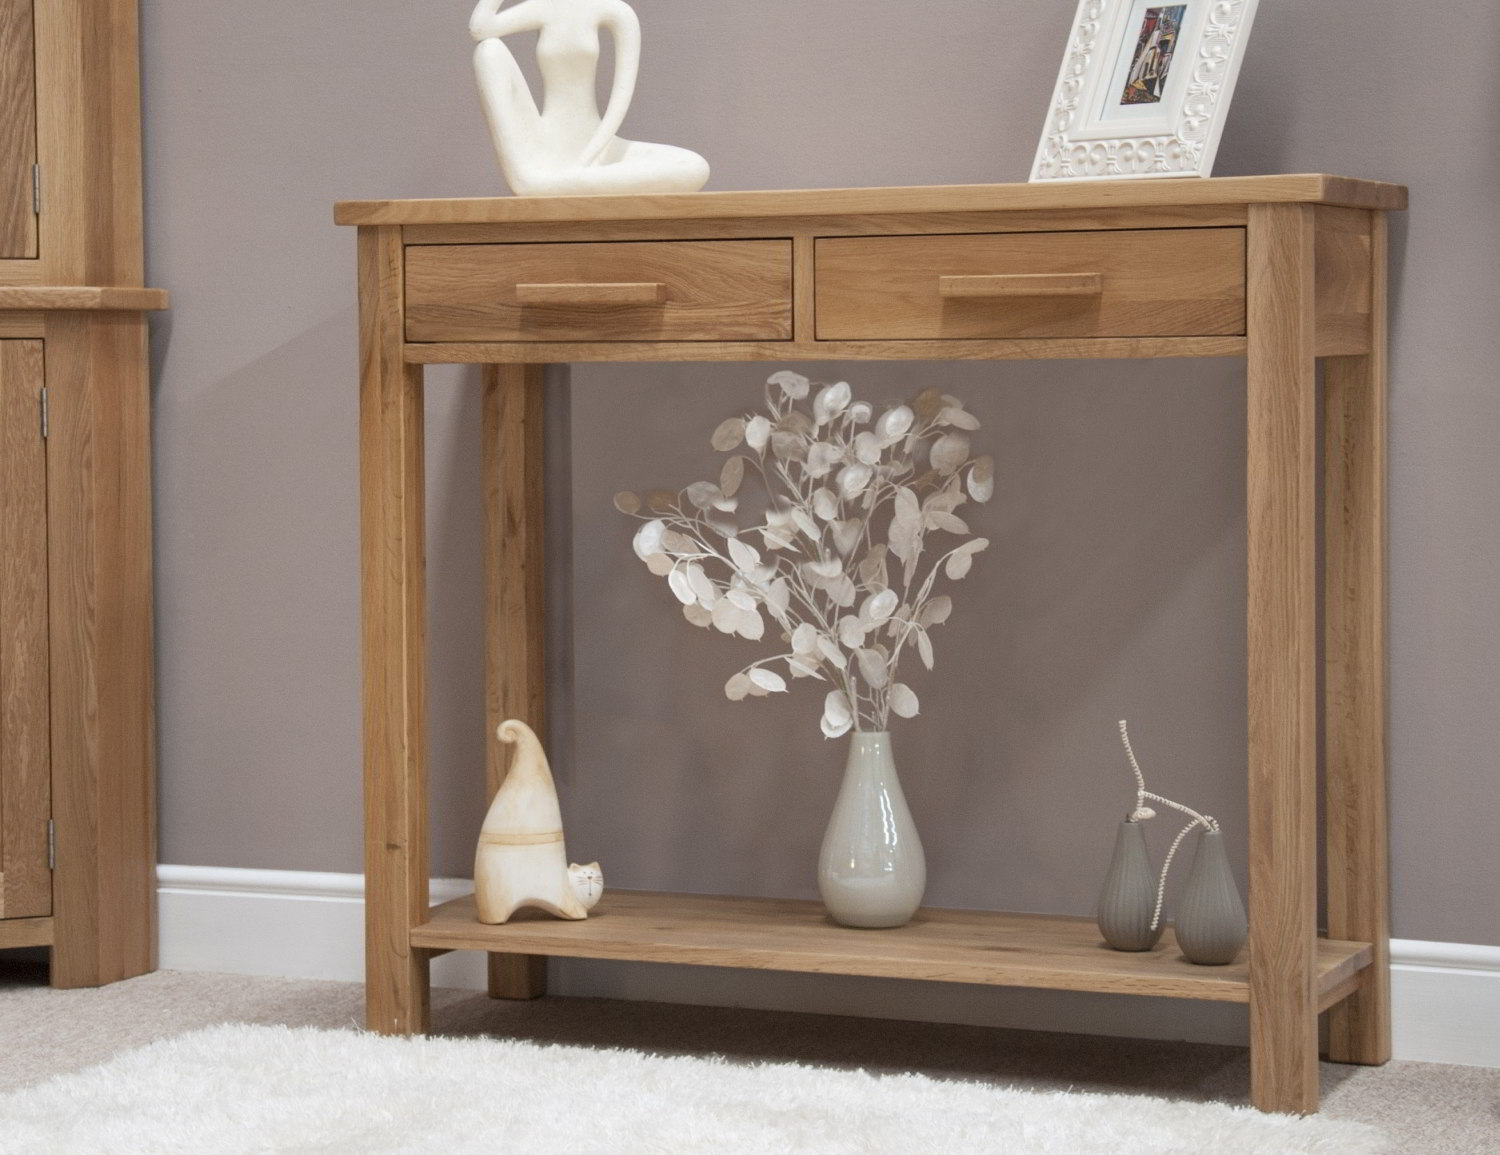 Hallway Console Table : Eton solid oak modern furniture hallway hall console table  eBay